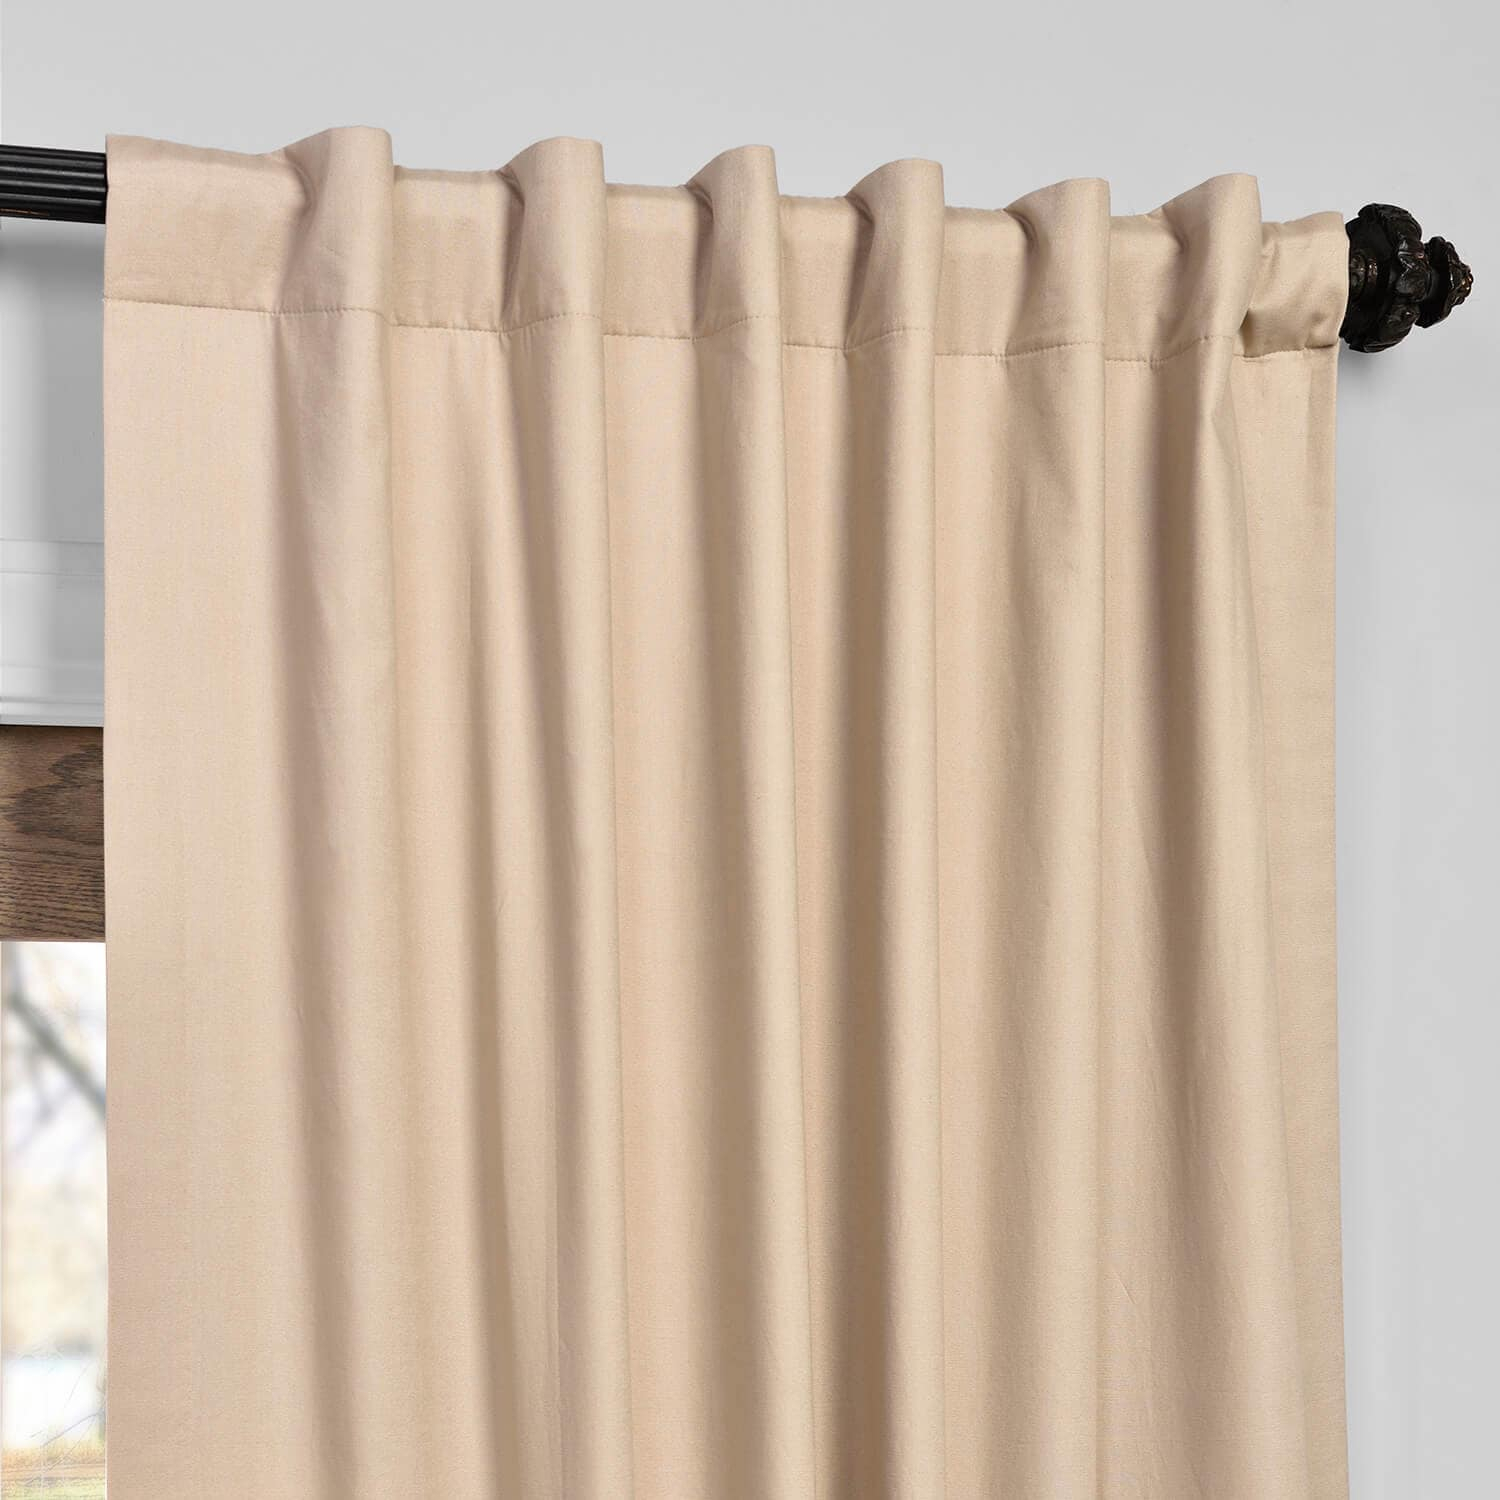 Rugged Tan Solid Cotton Blackout Curtain Inside Solid Cotton True Blackout Curtain Panels (View 8 of 30)